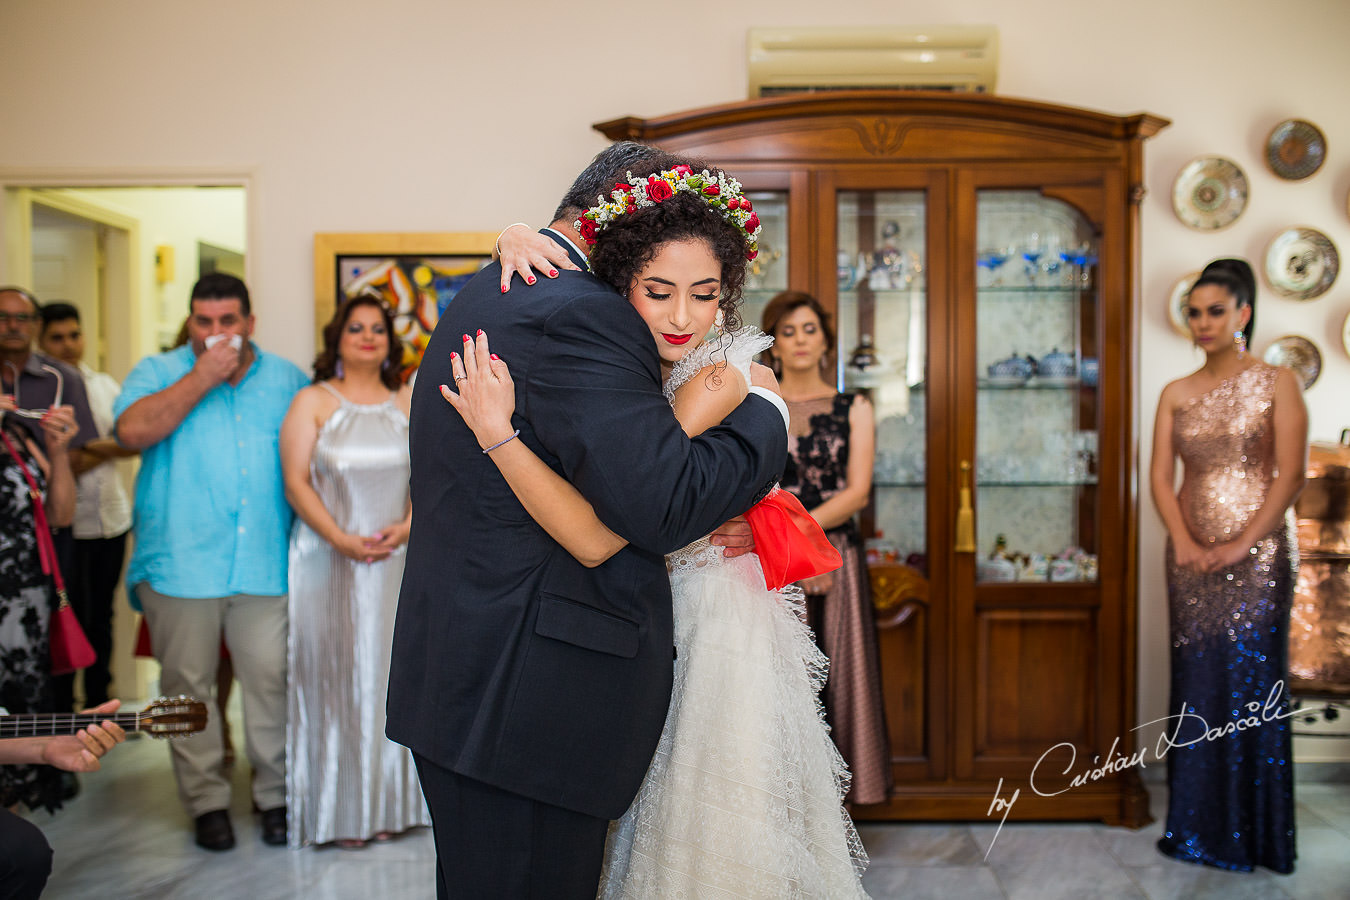 Bride and her father, moments captured by Cyprus Wedding Photographer Cristian Dascalu at a beautiful wedding in Larnaka, Cyprus.